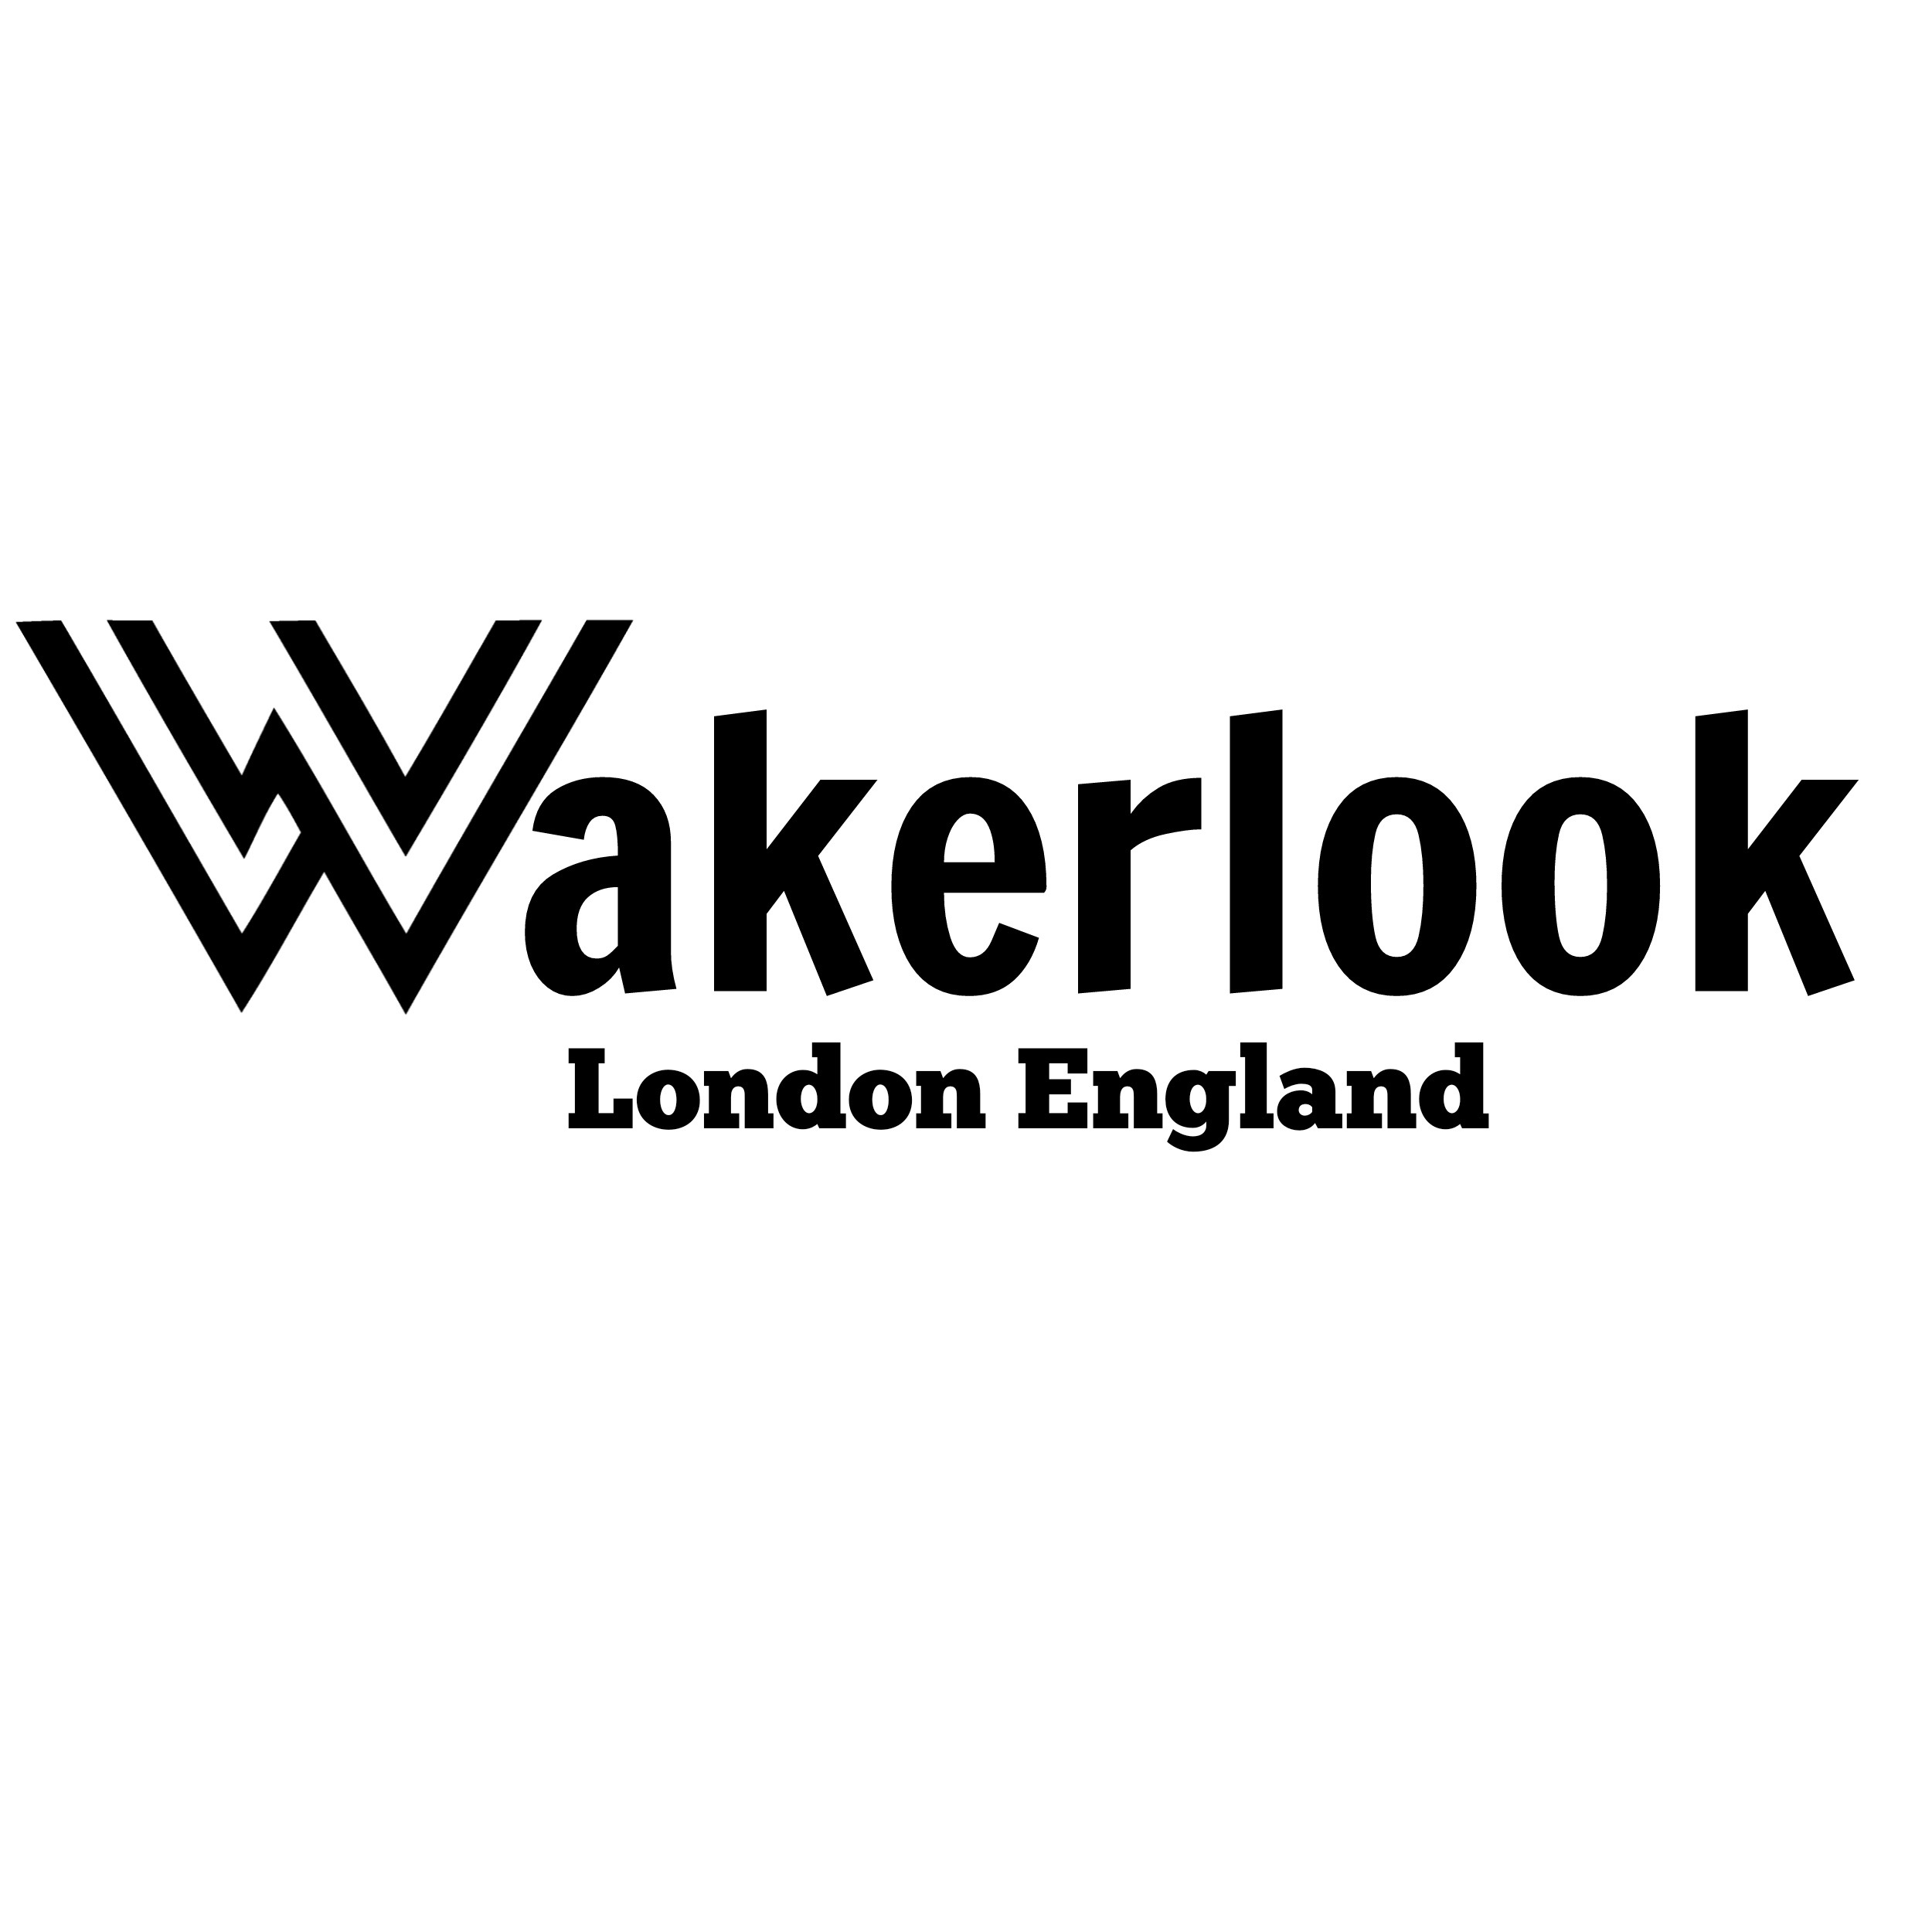 Wakerlook Beats Challenging Startup To Launch Luxury Clothing Brand For Men